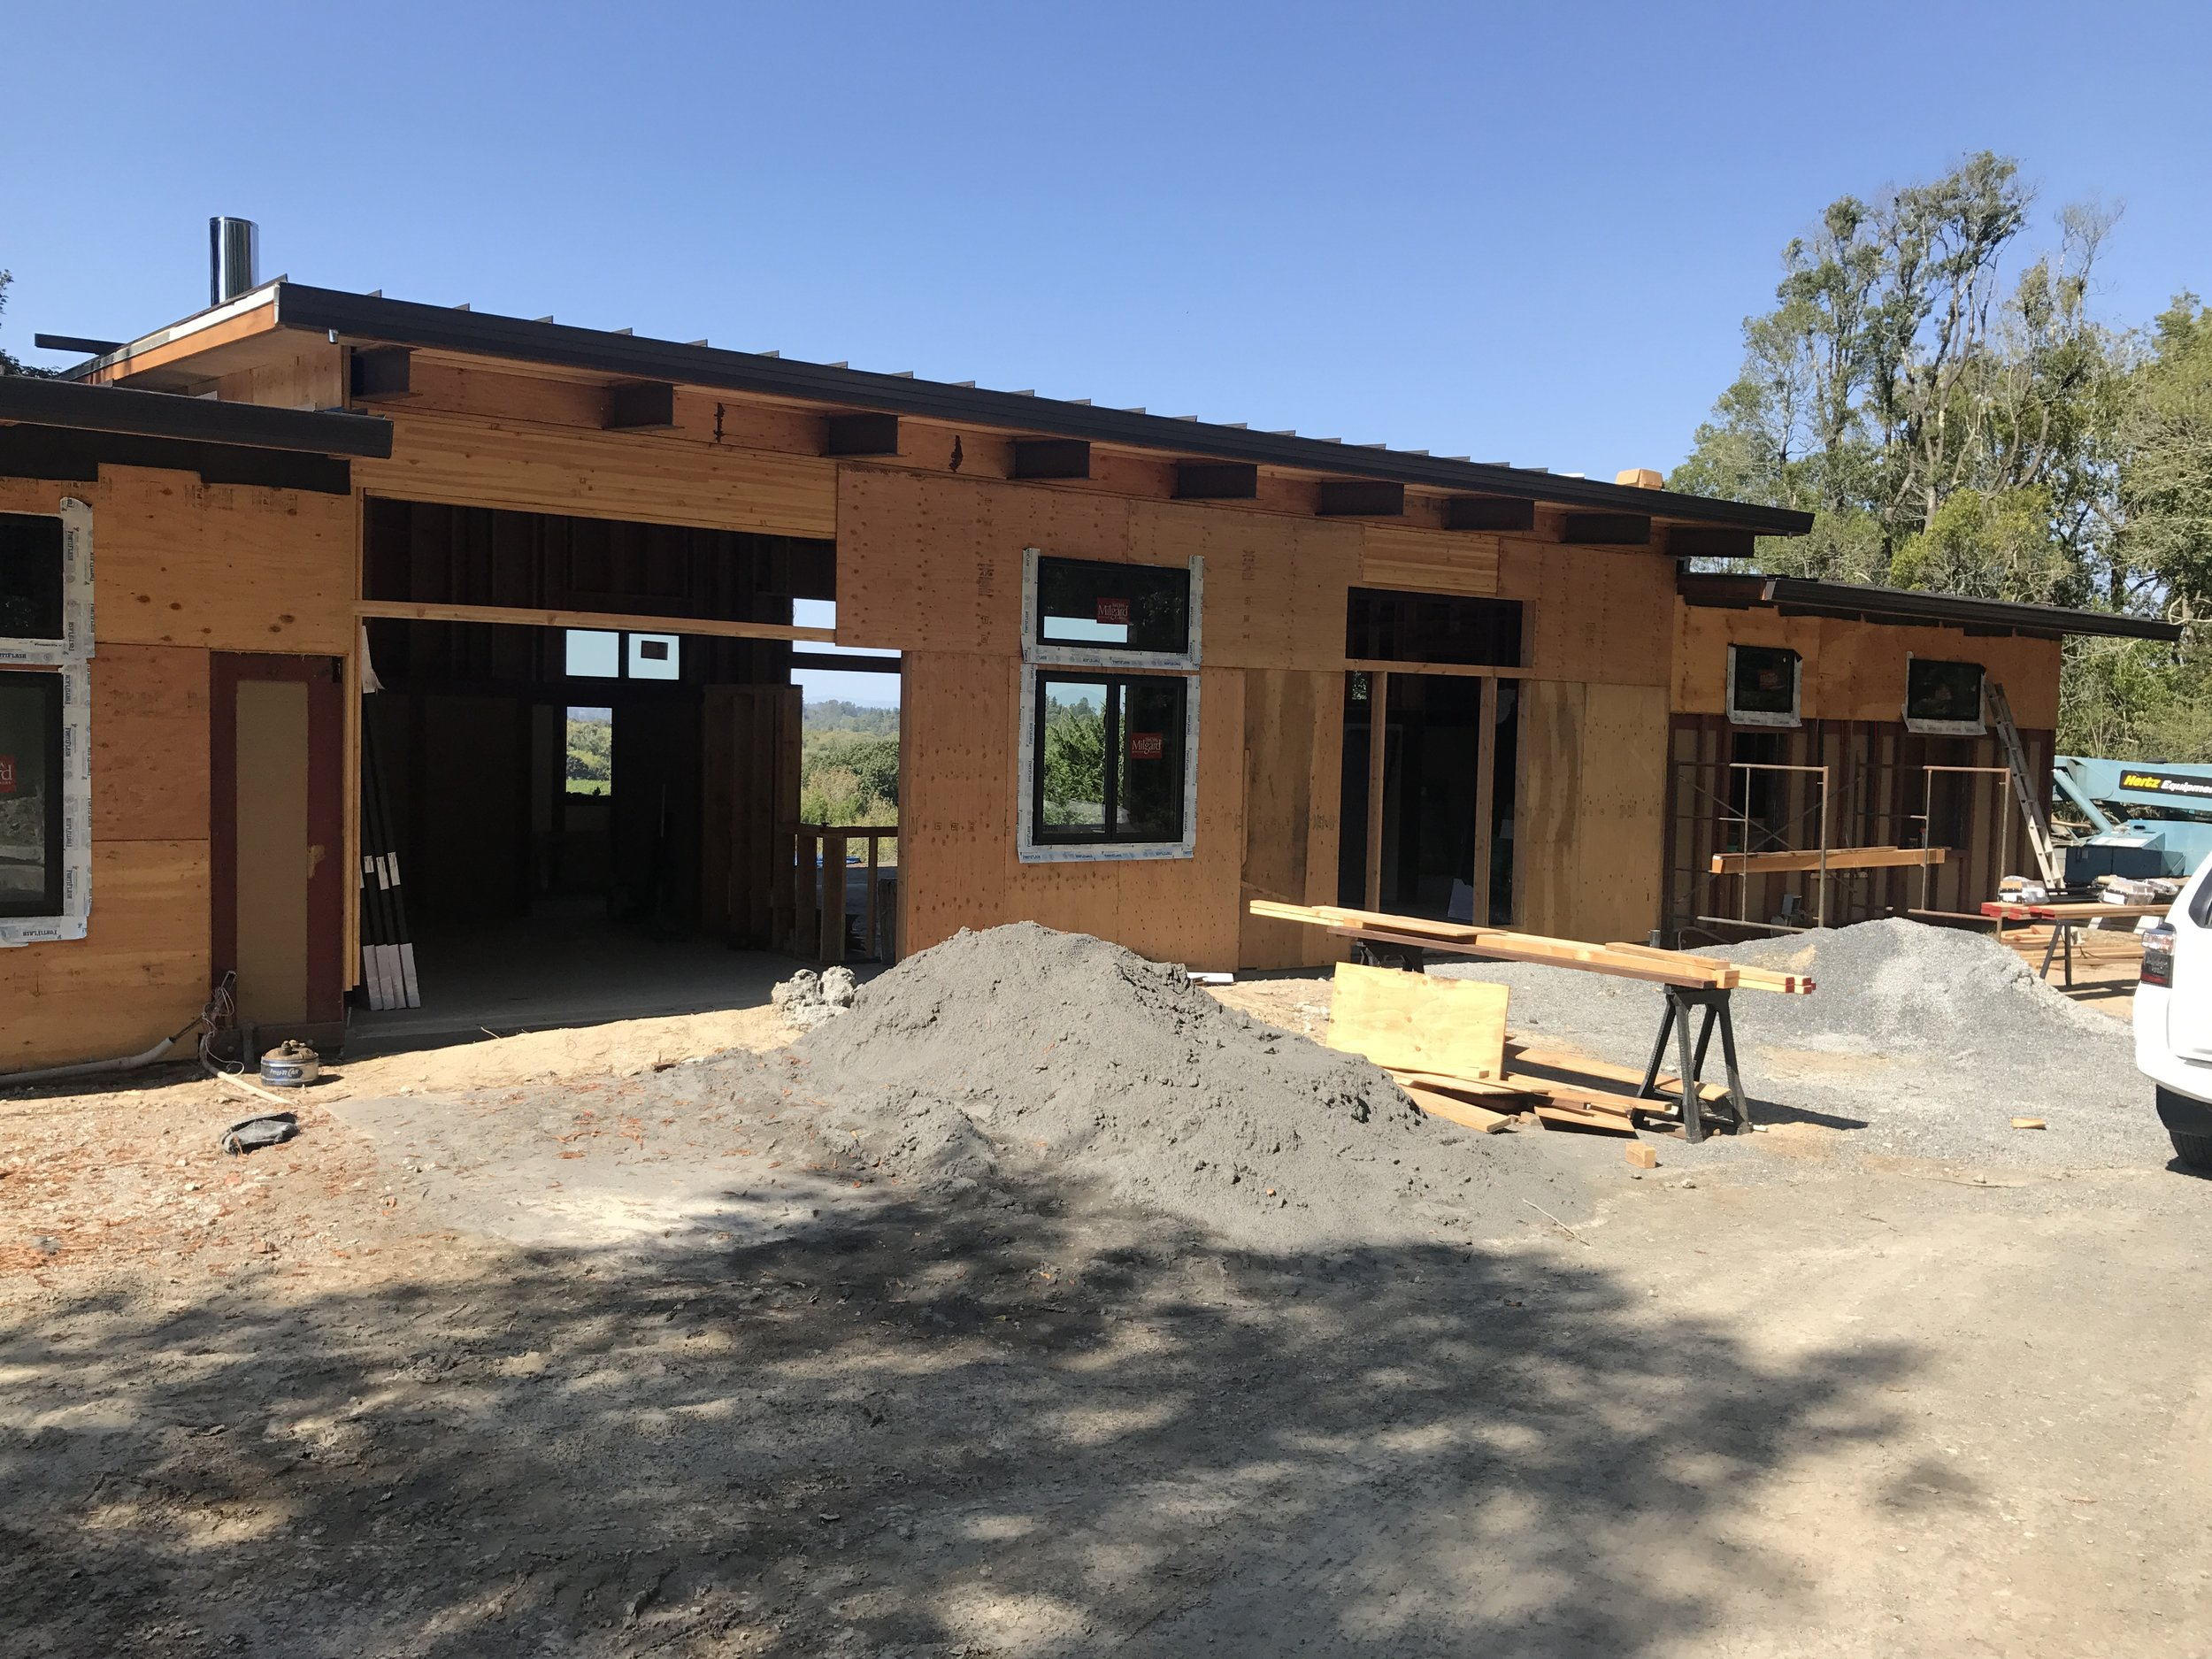 adobe-house-preservation-restoration-remodel-kane-construction-contractor-healdsburg.JPG